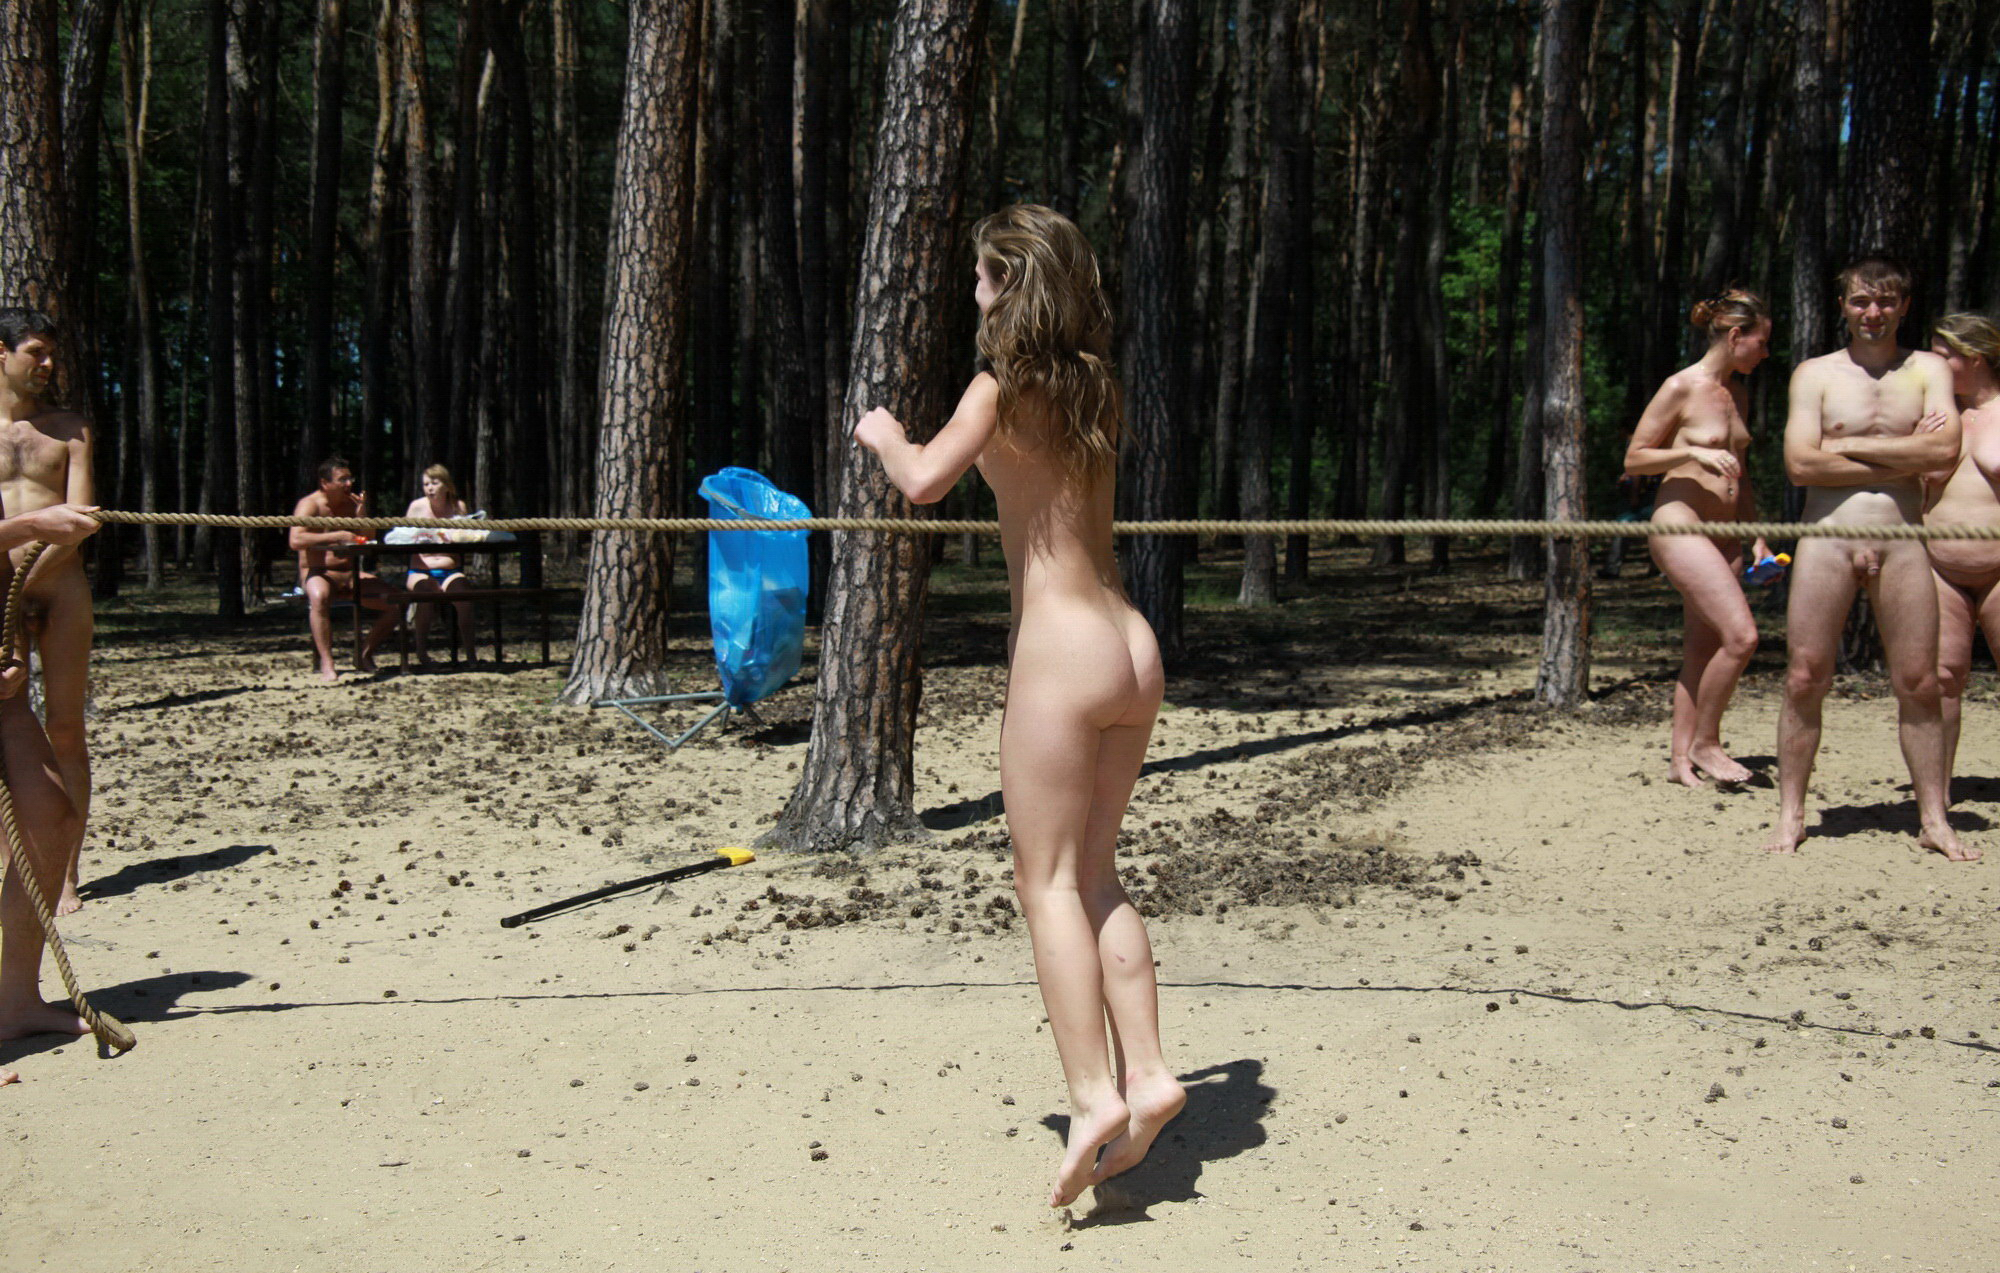 Cute family nudist video